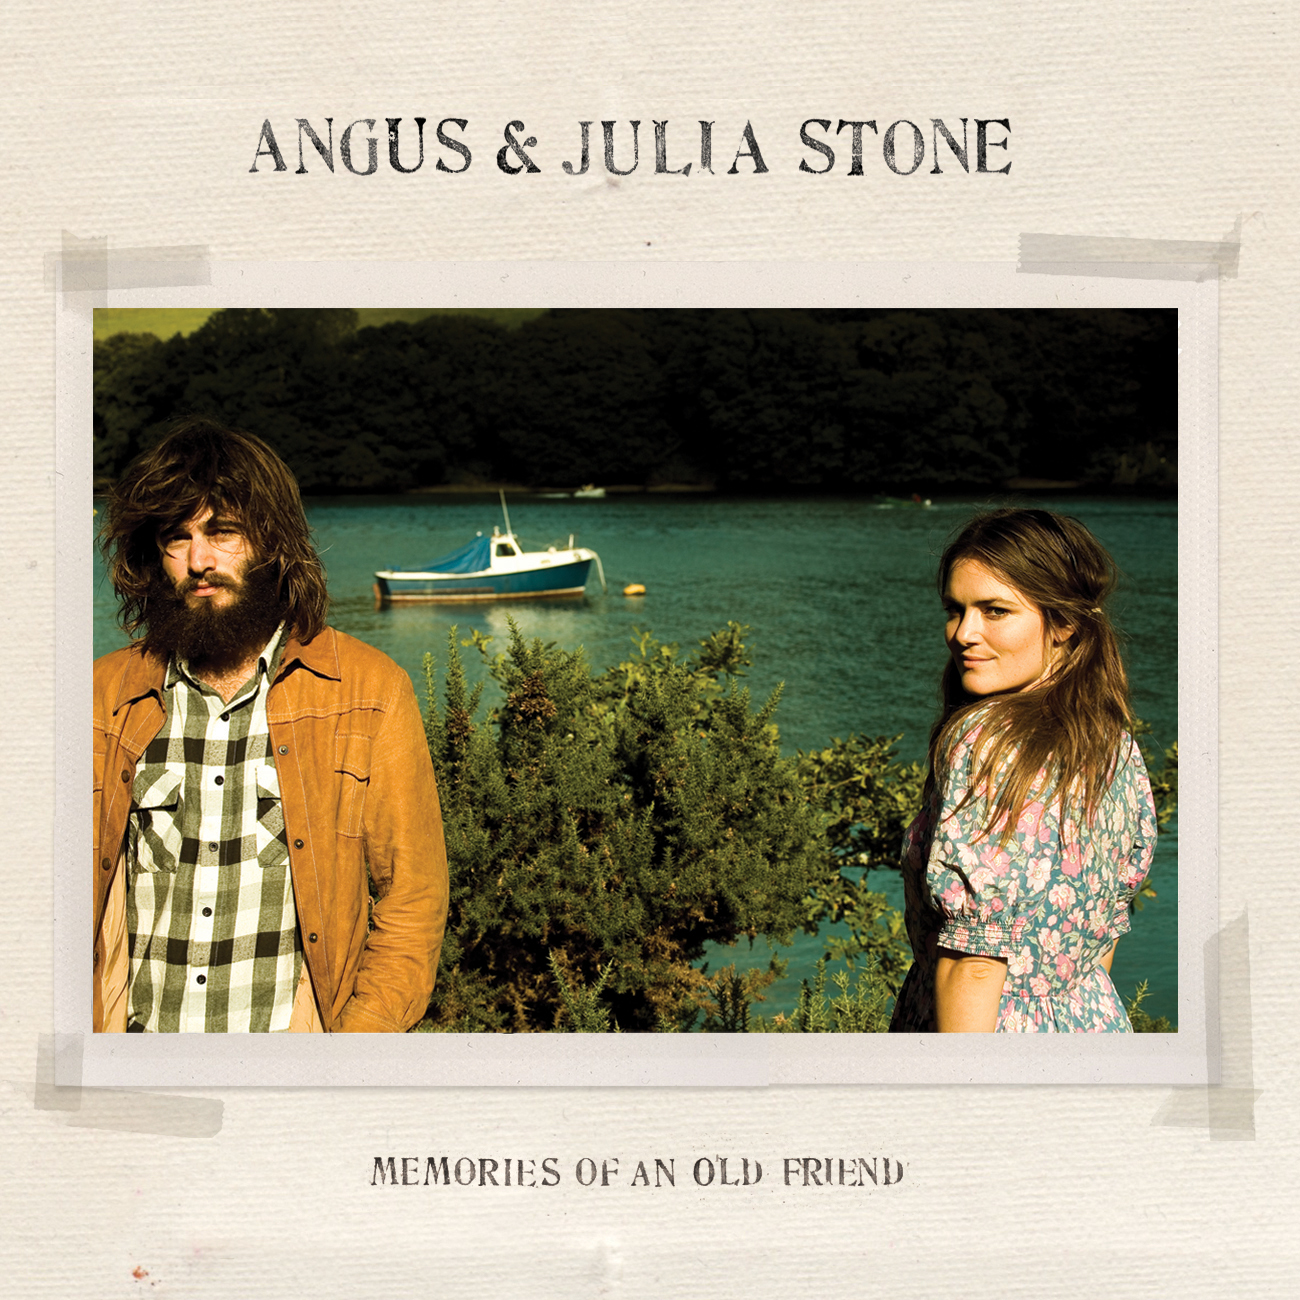 jaquettes2/Angus-and-Julia-Stones_Memories-of-and-old-friend.jpg